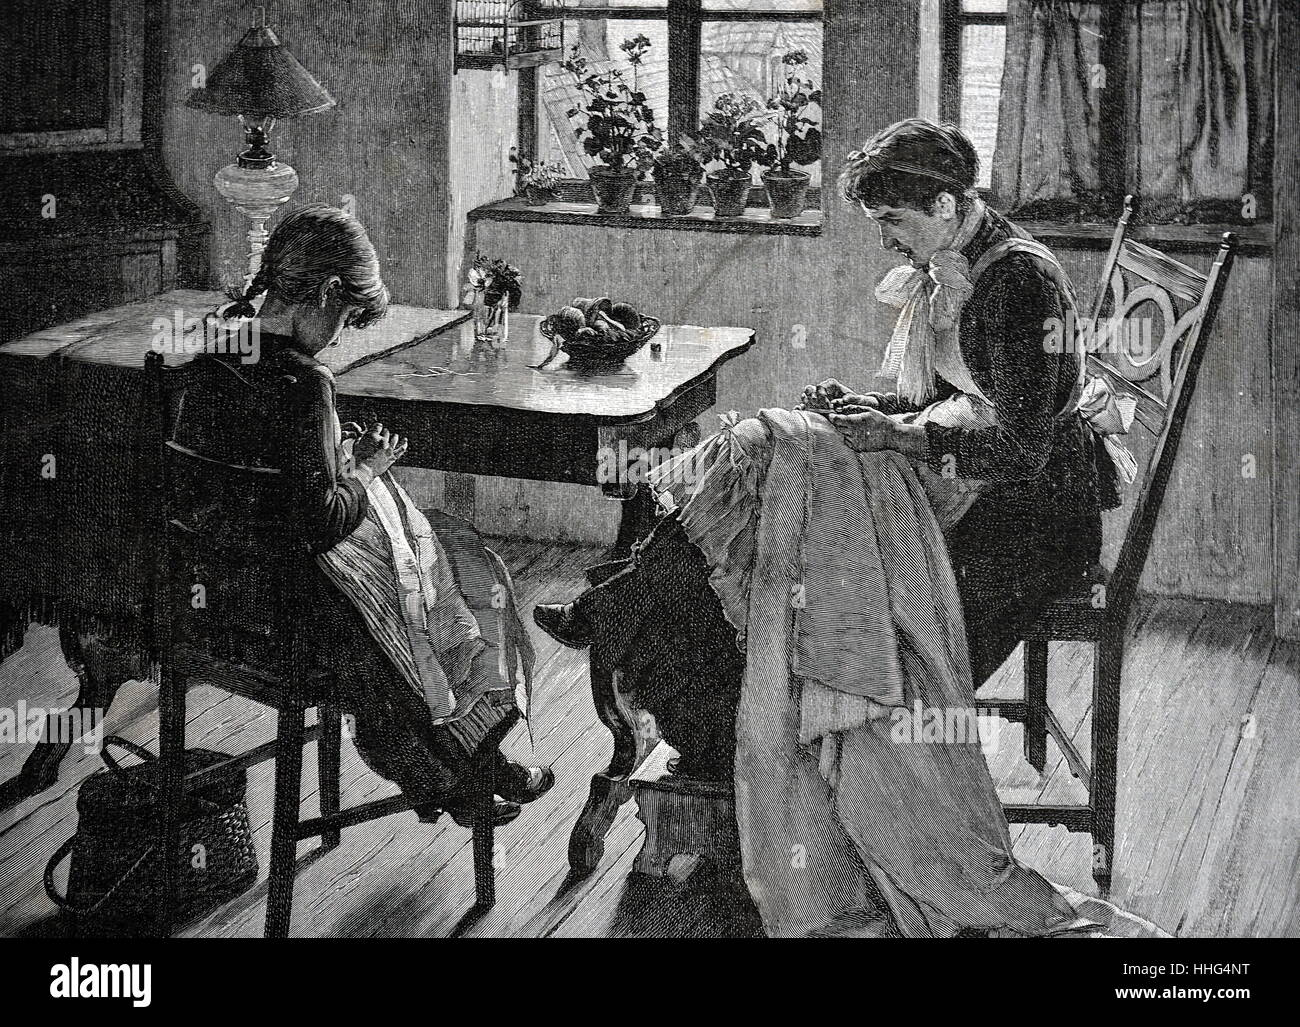 Women and daughter sitting at the dinner table, practicing their needlework. Dated 1893. - Stock Image